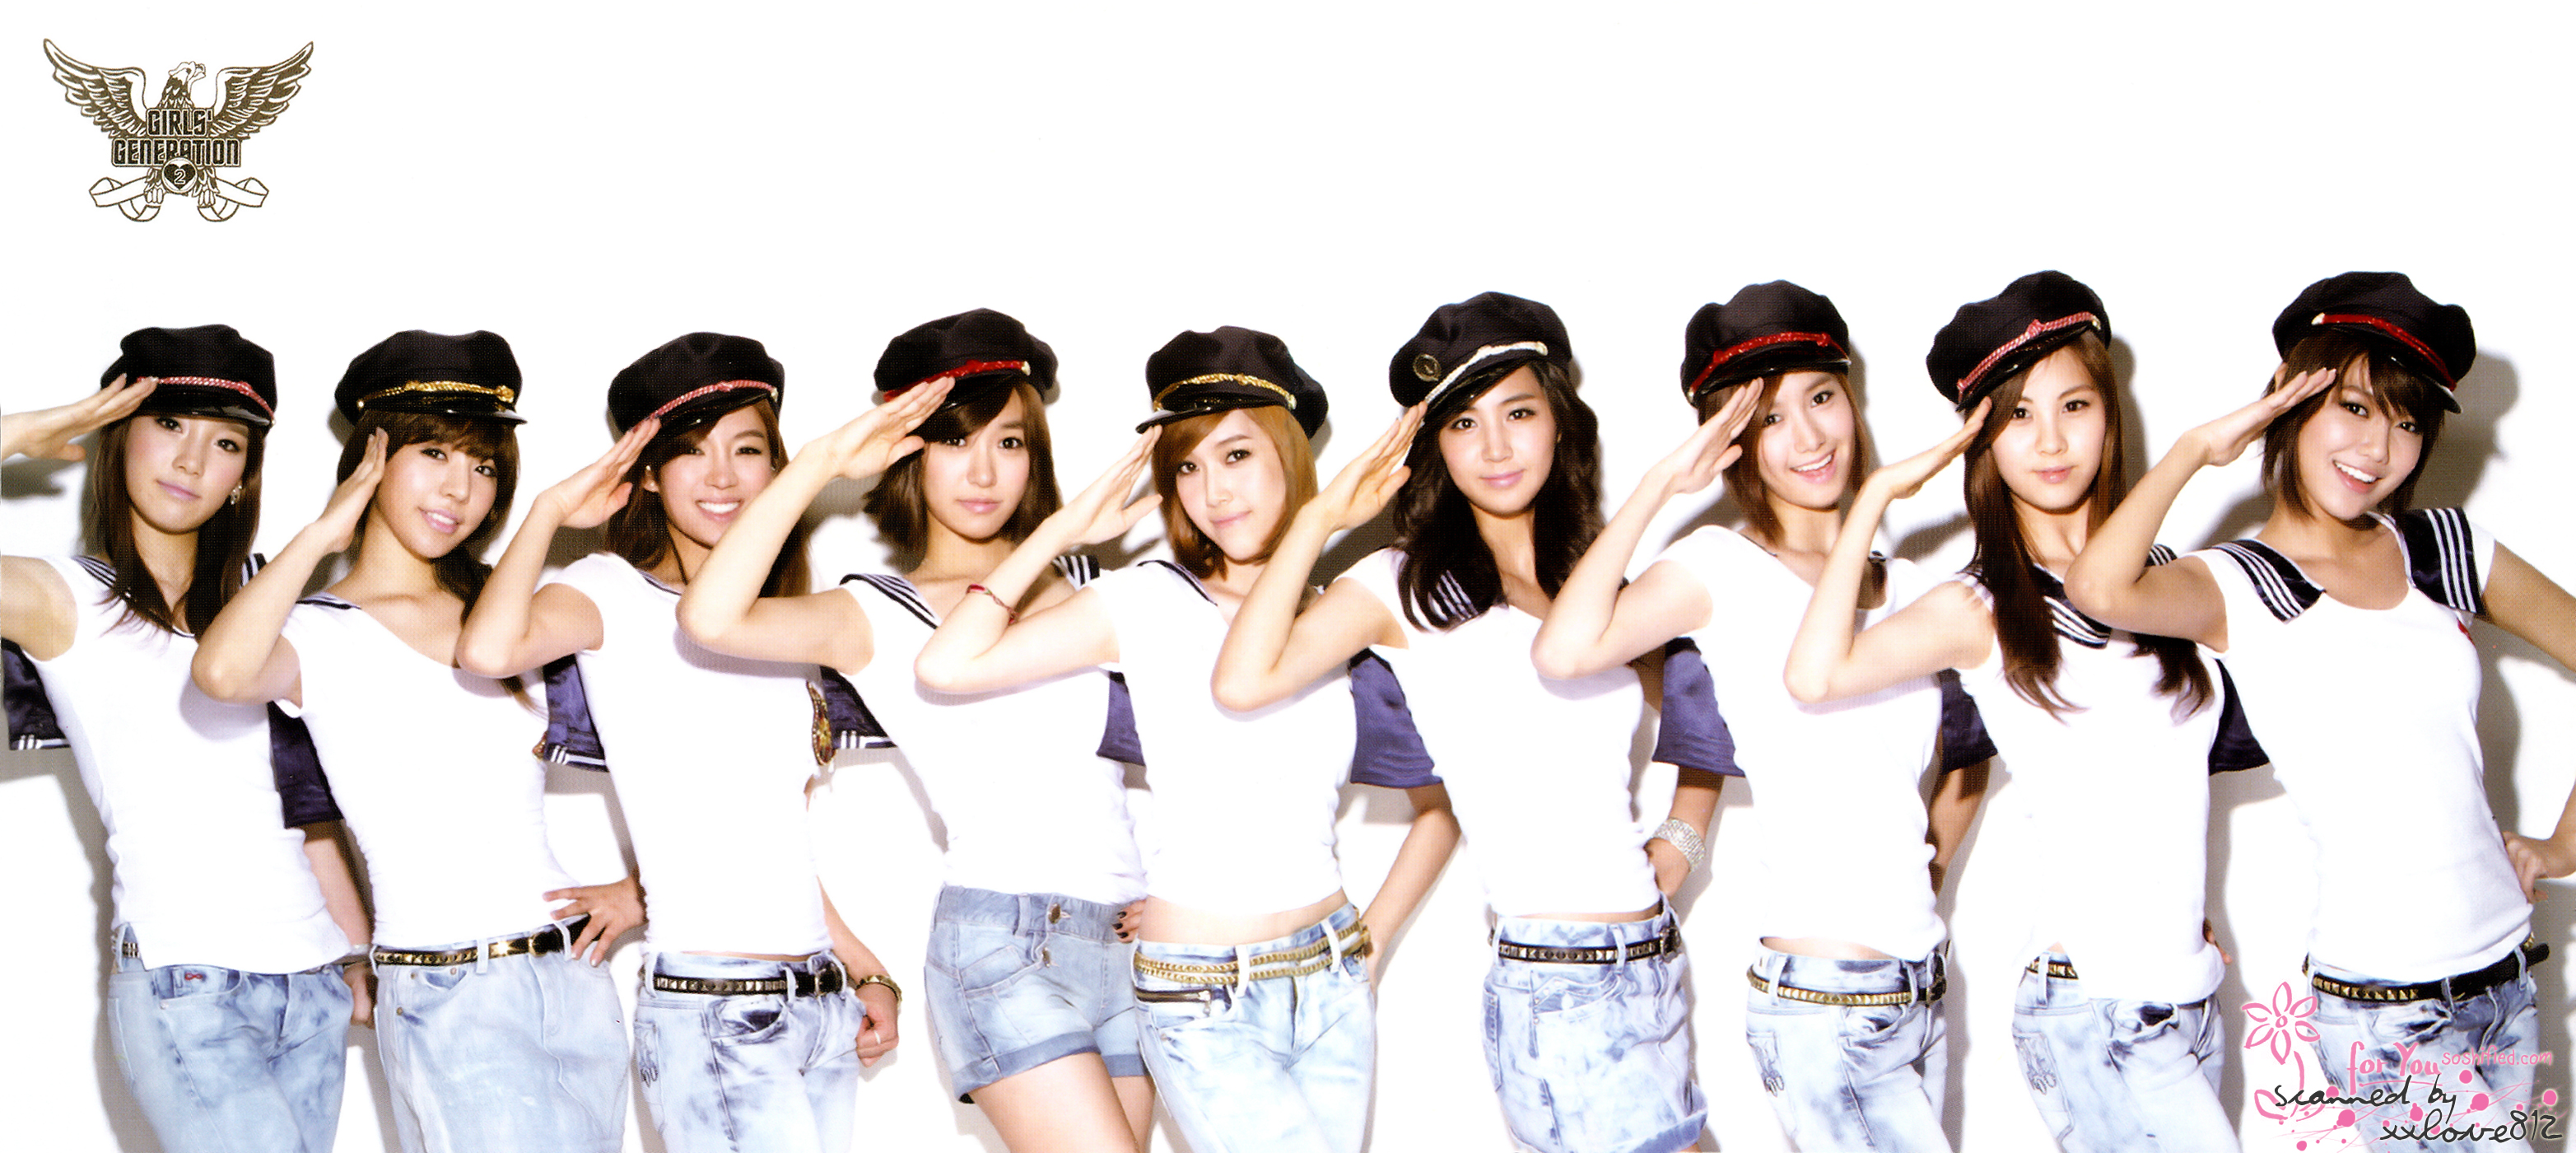 ... SNSD - Tell Me Your Wish (Genie) by mhelaonline07